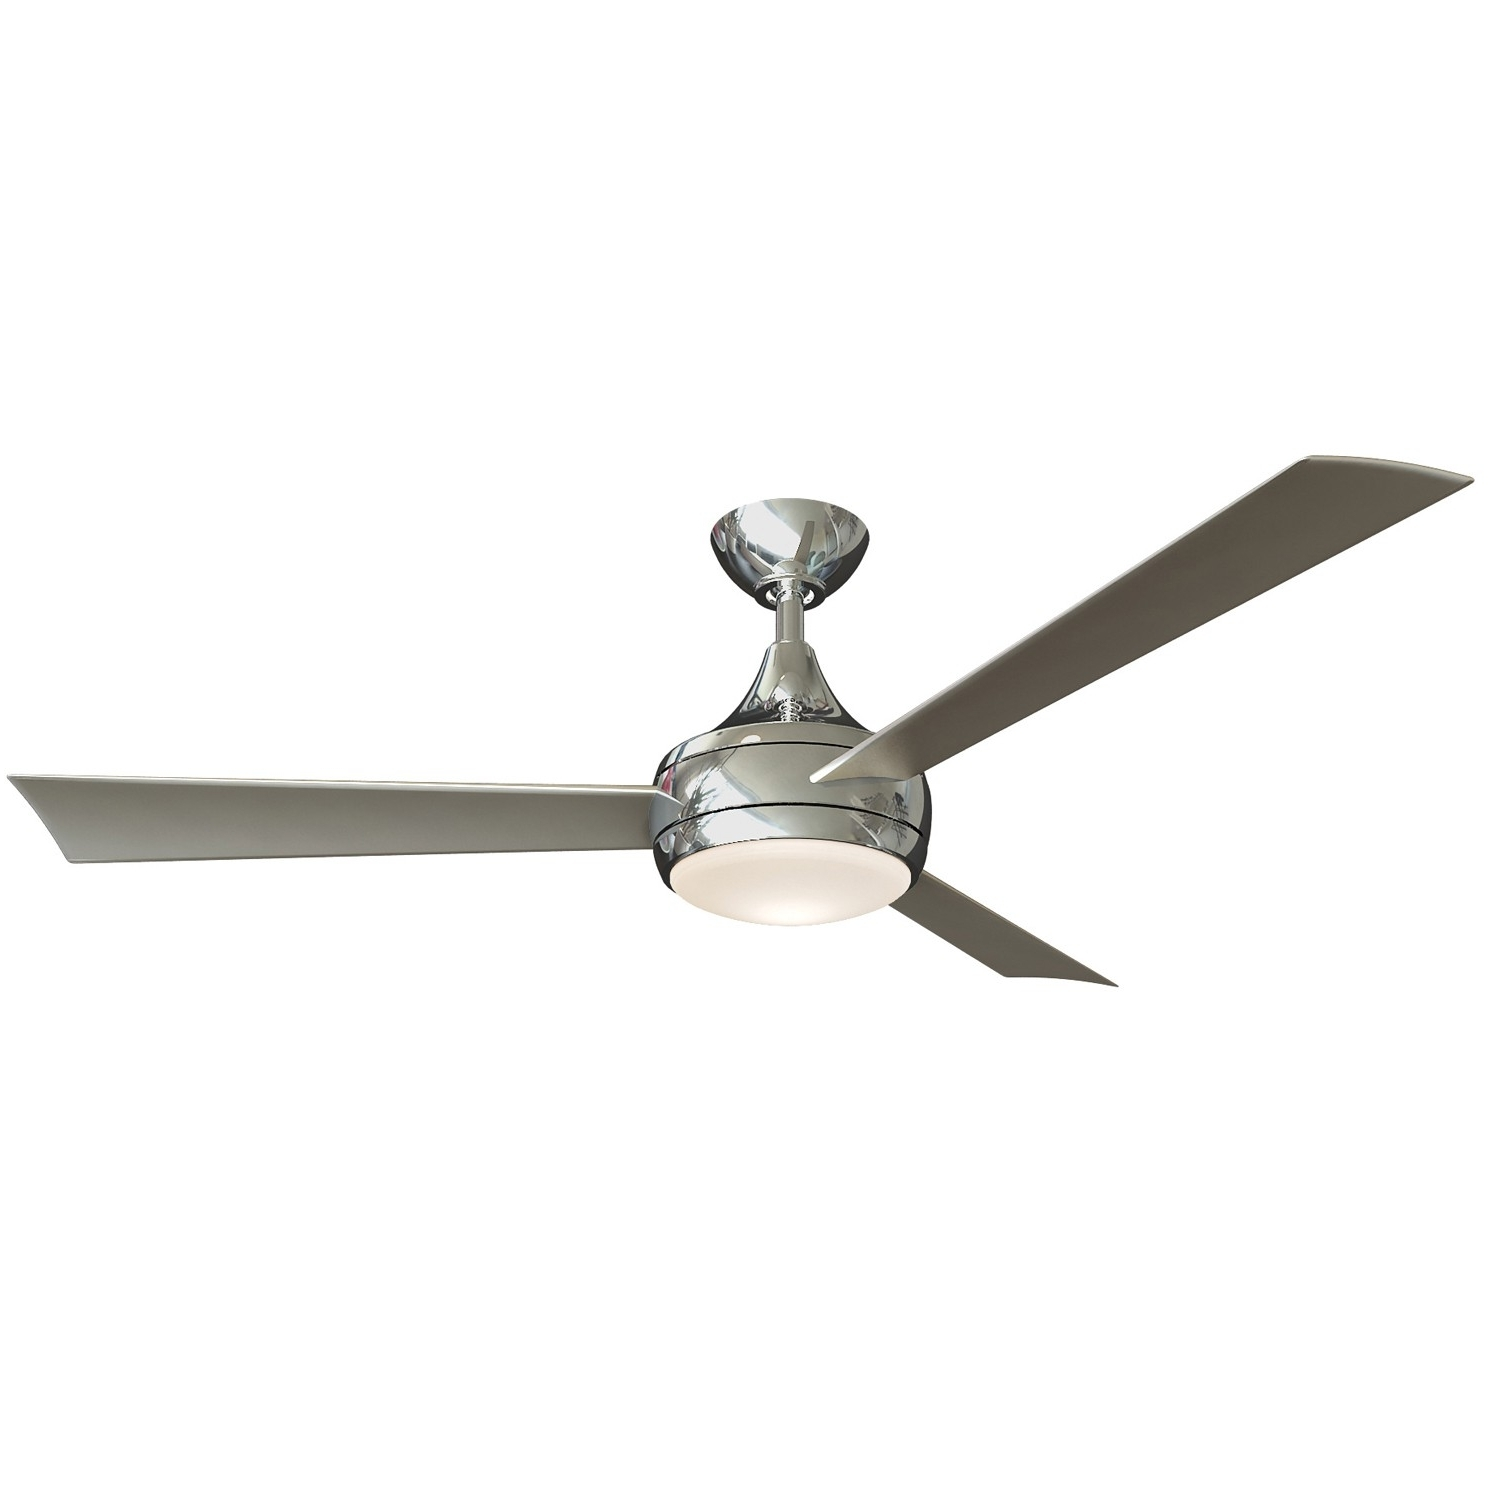 Most Popular Outdoor Ceiling Fans Under $75 Pertaining To Atlas Fan Company Donaire Ceiling Fan (View 7 of 20)